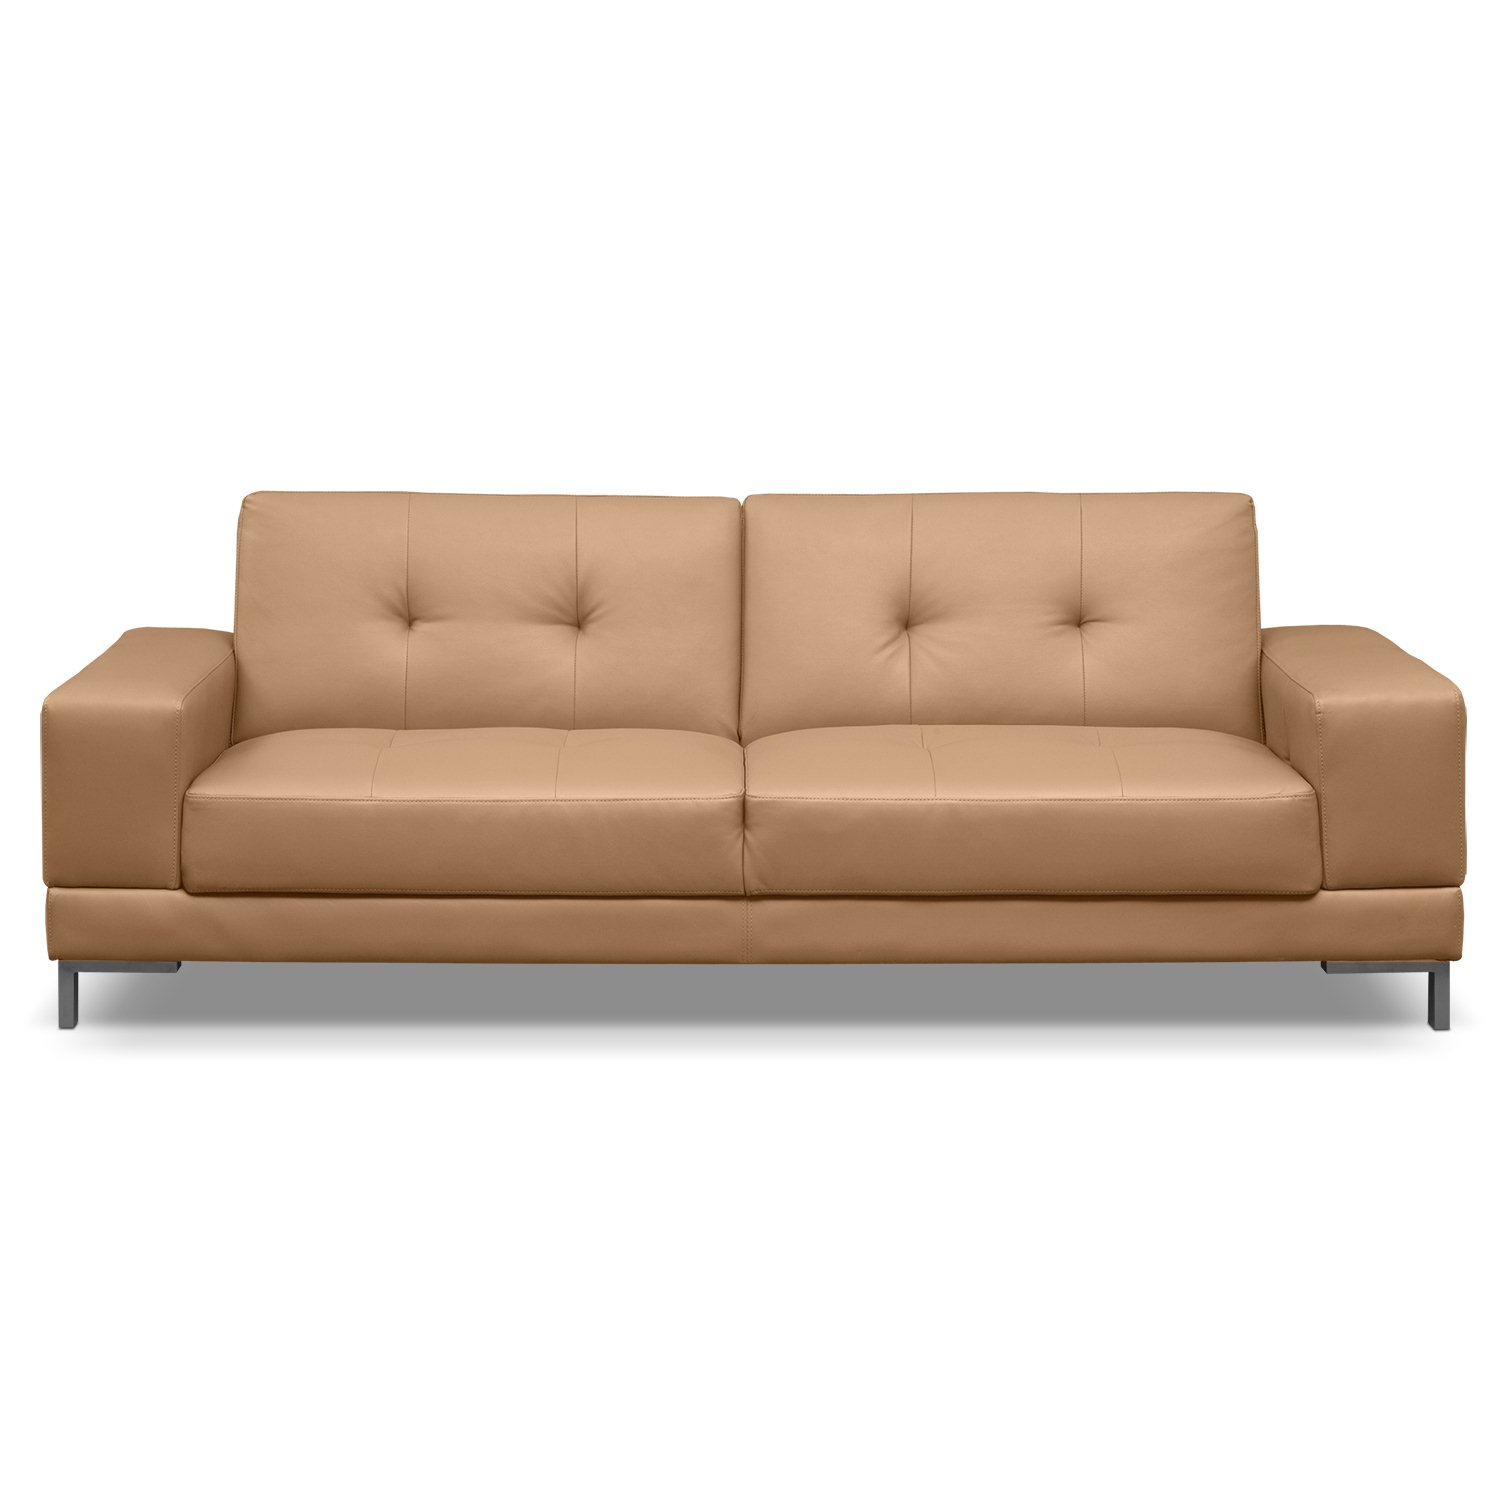 futon sofa beds pictures 2